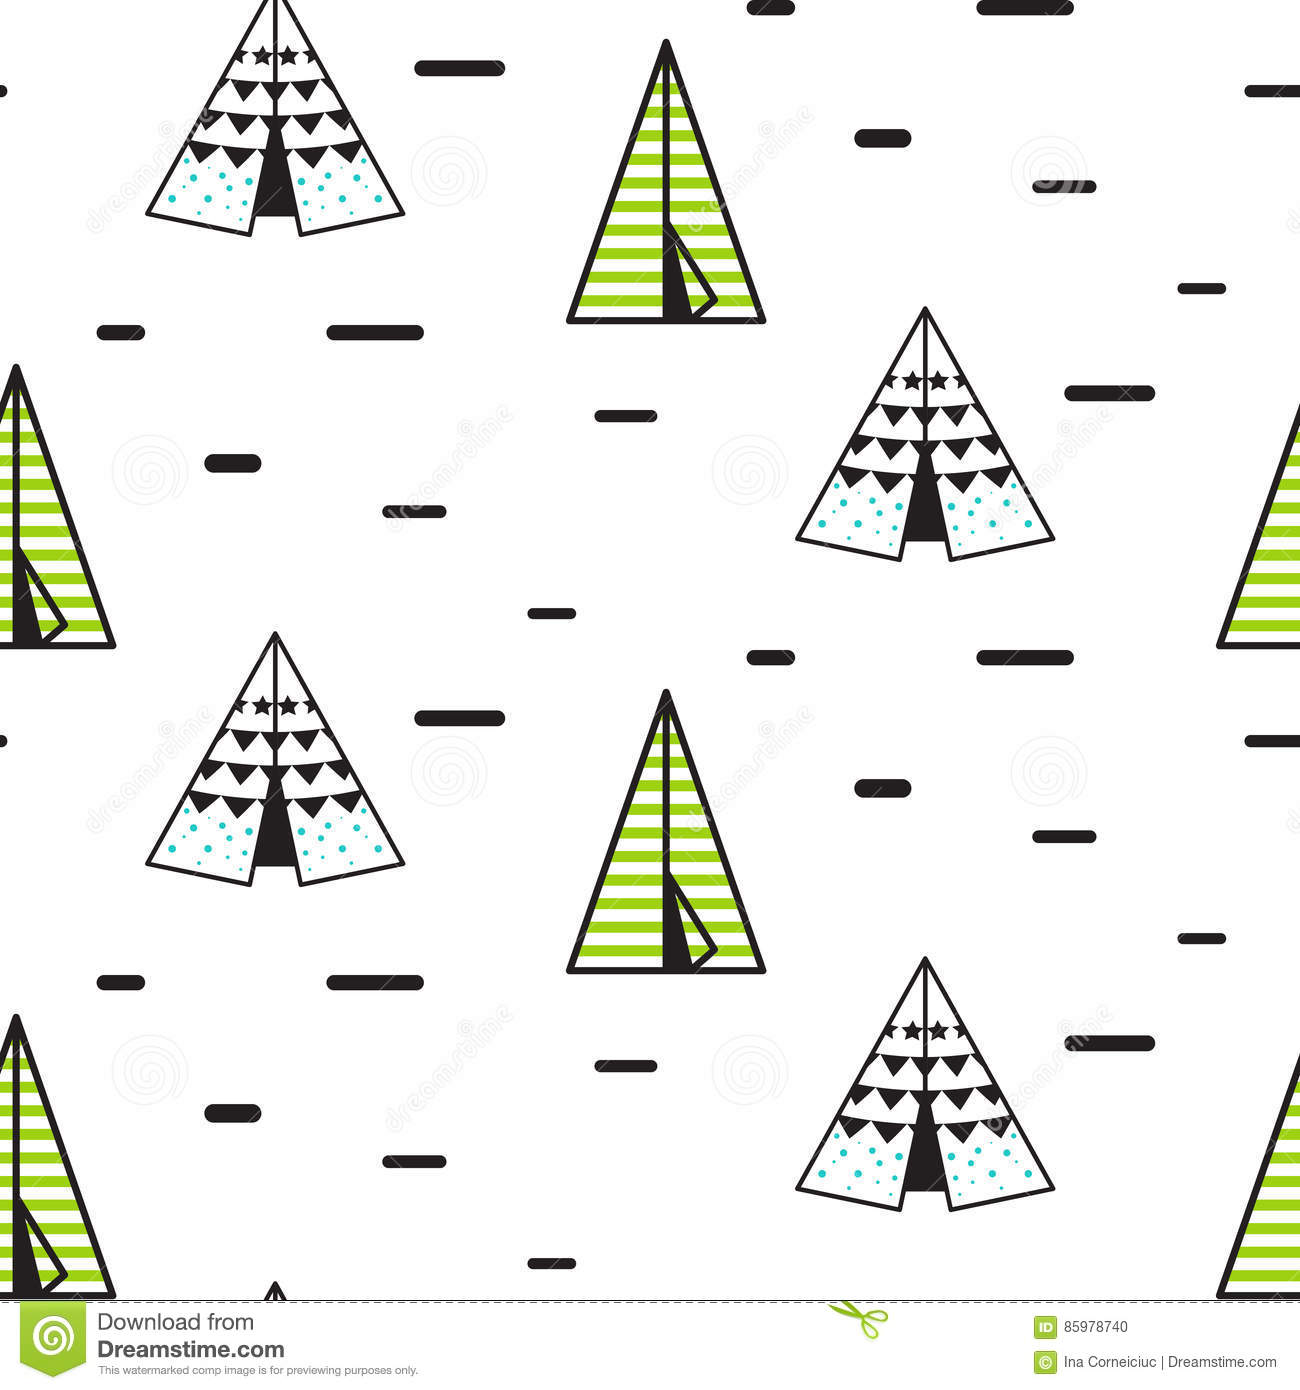 Teepee tent vector seamless pattern.  sc 1 st  Dreamstime.com & Teepee Tent Vector Seamless Pattern. Stock Vector - Illustration ...